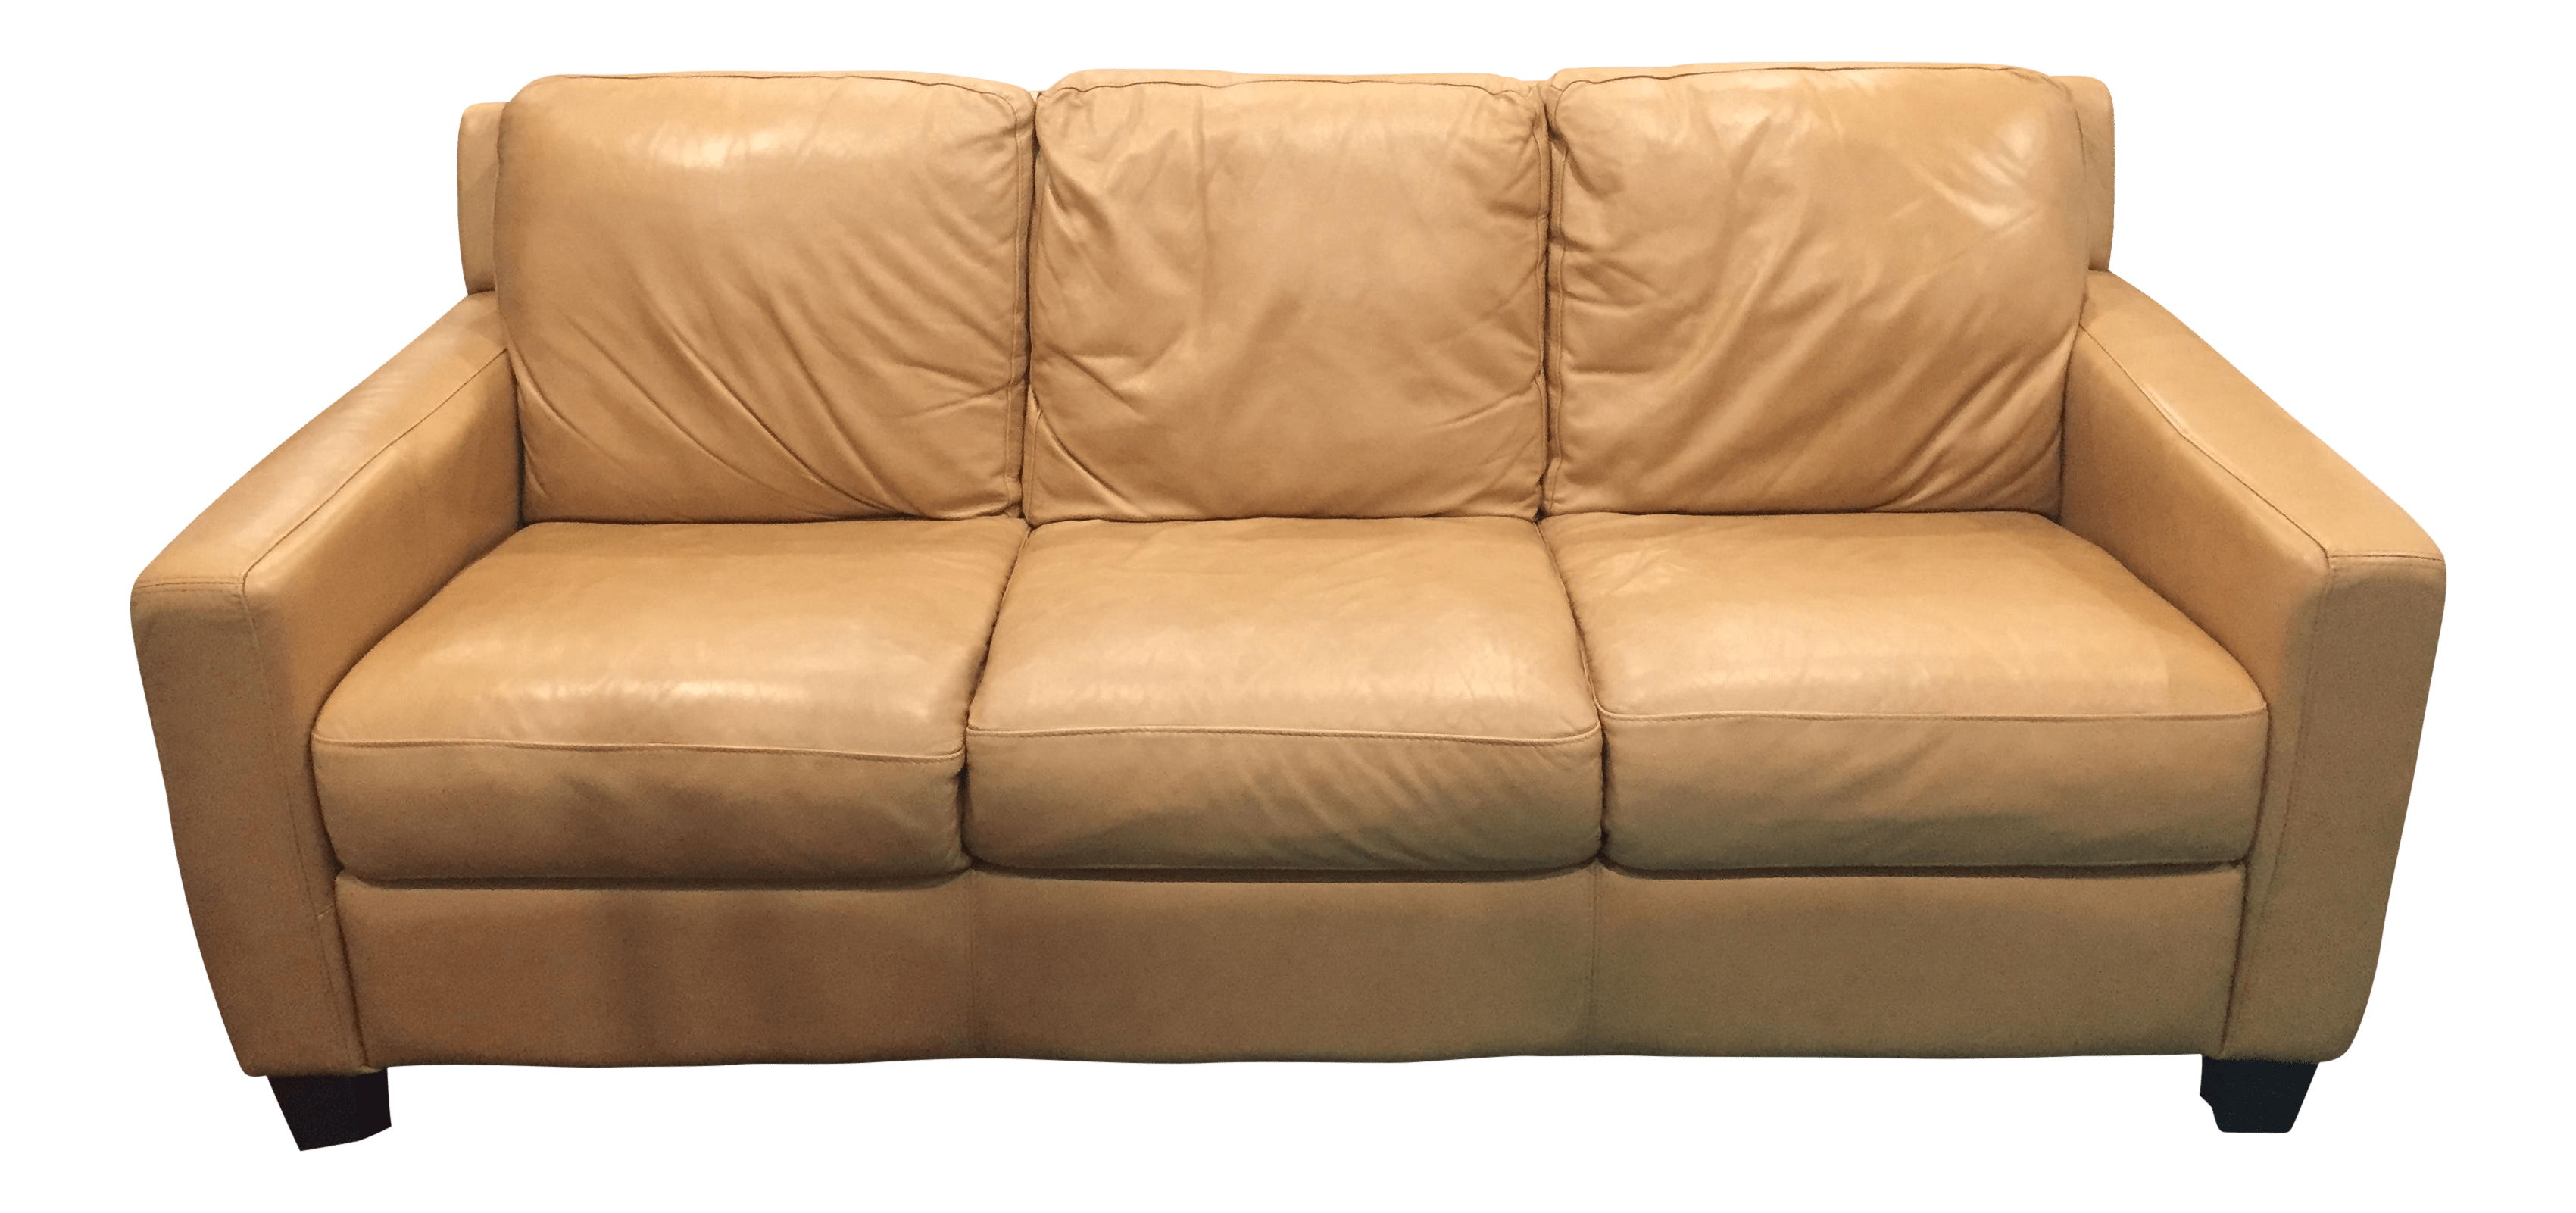 Divani Leather Sofa For Sale Divani Chateau D Ax Tan Italian Leather Sofa